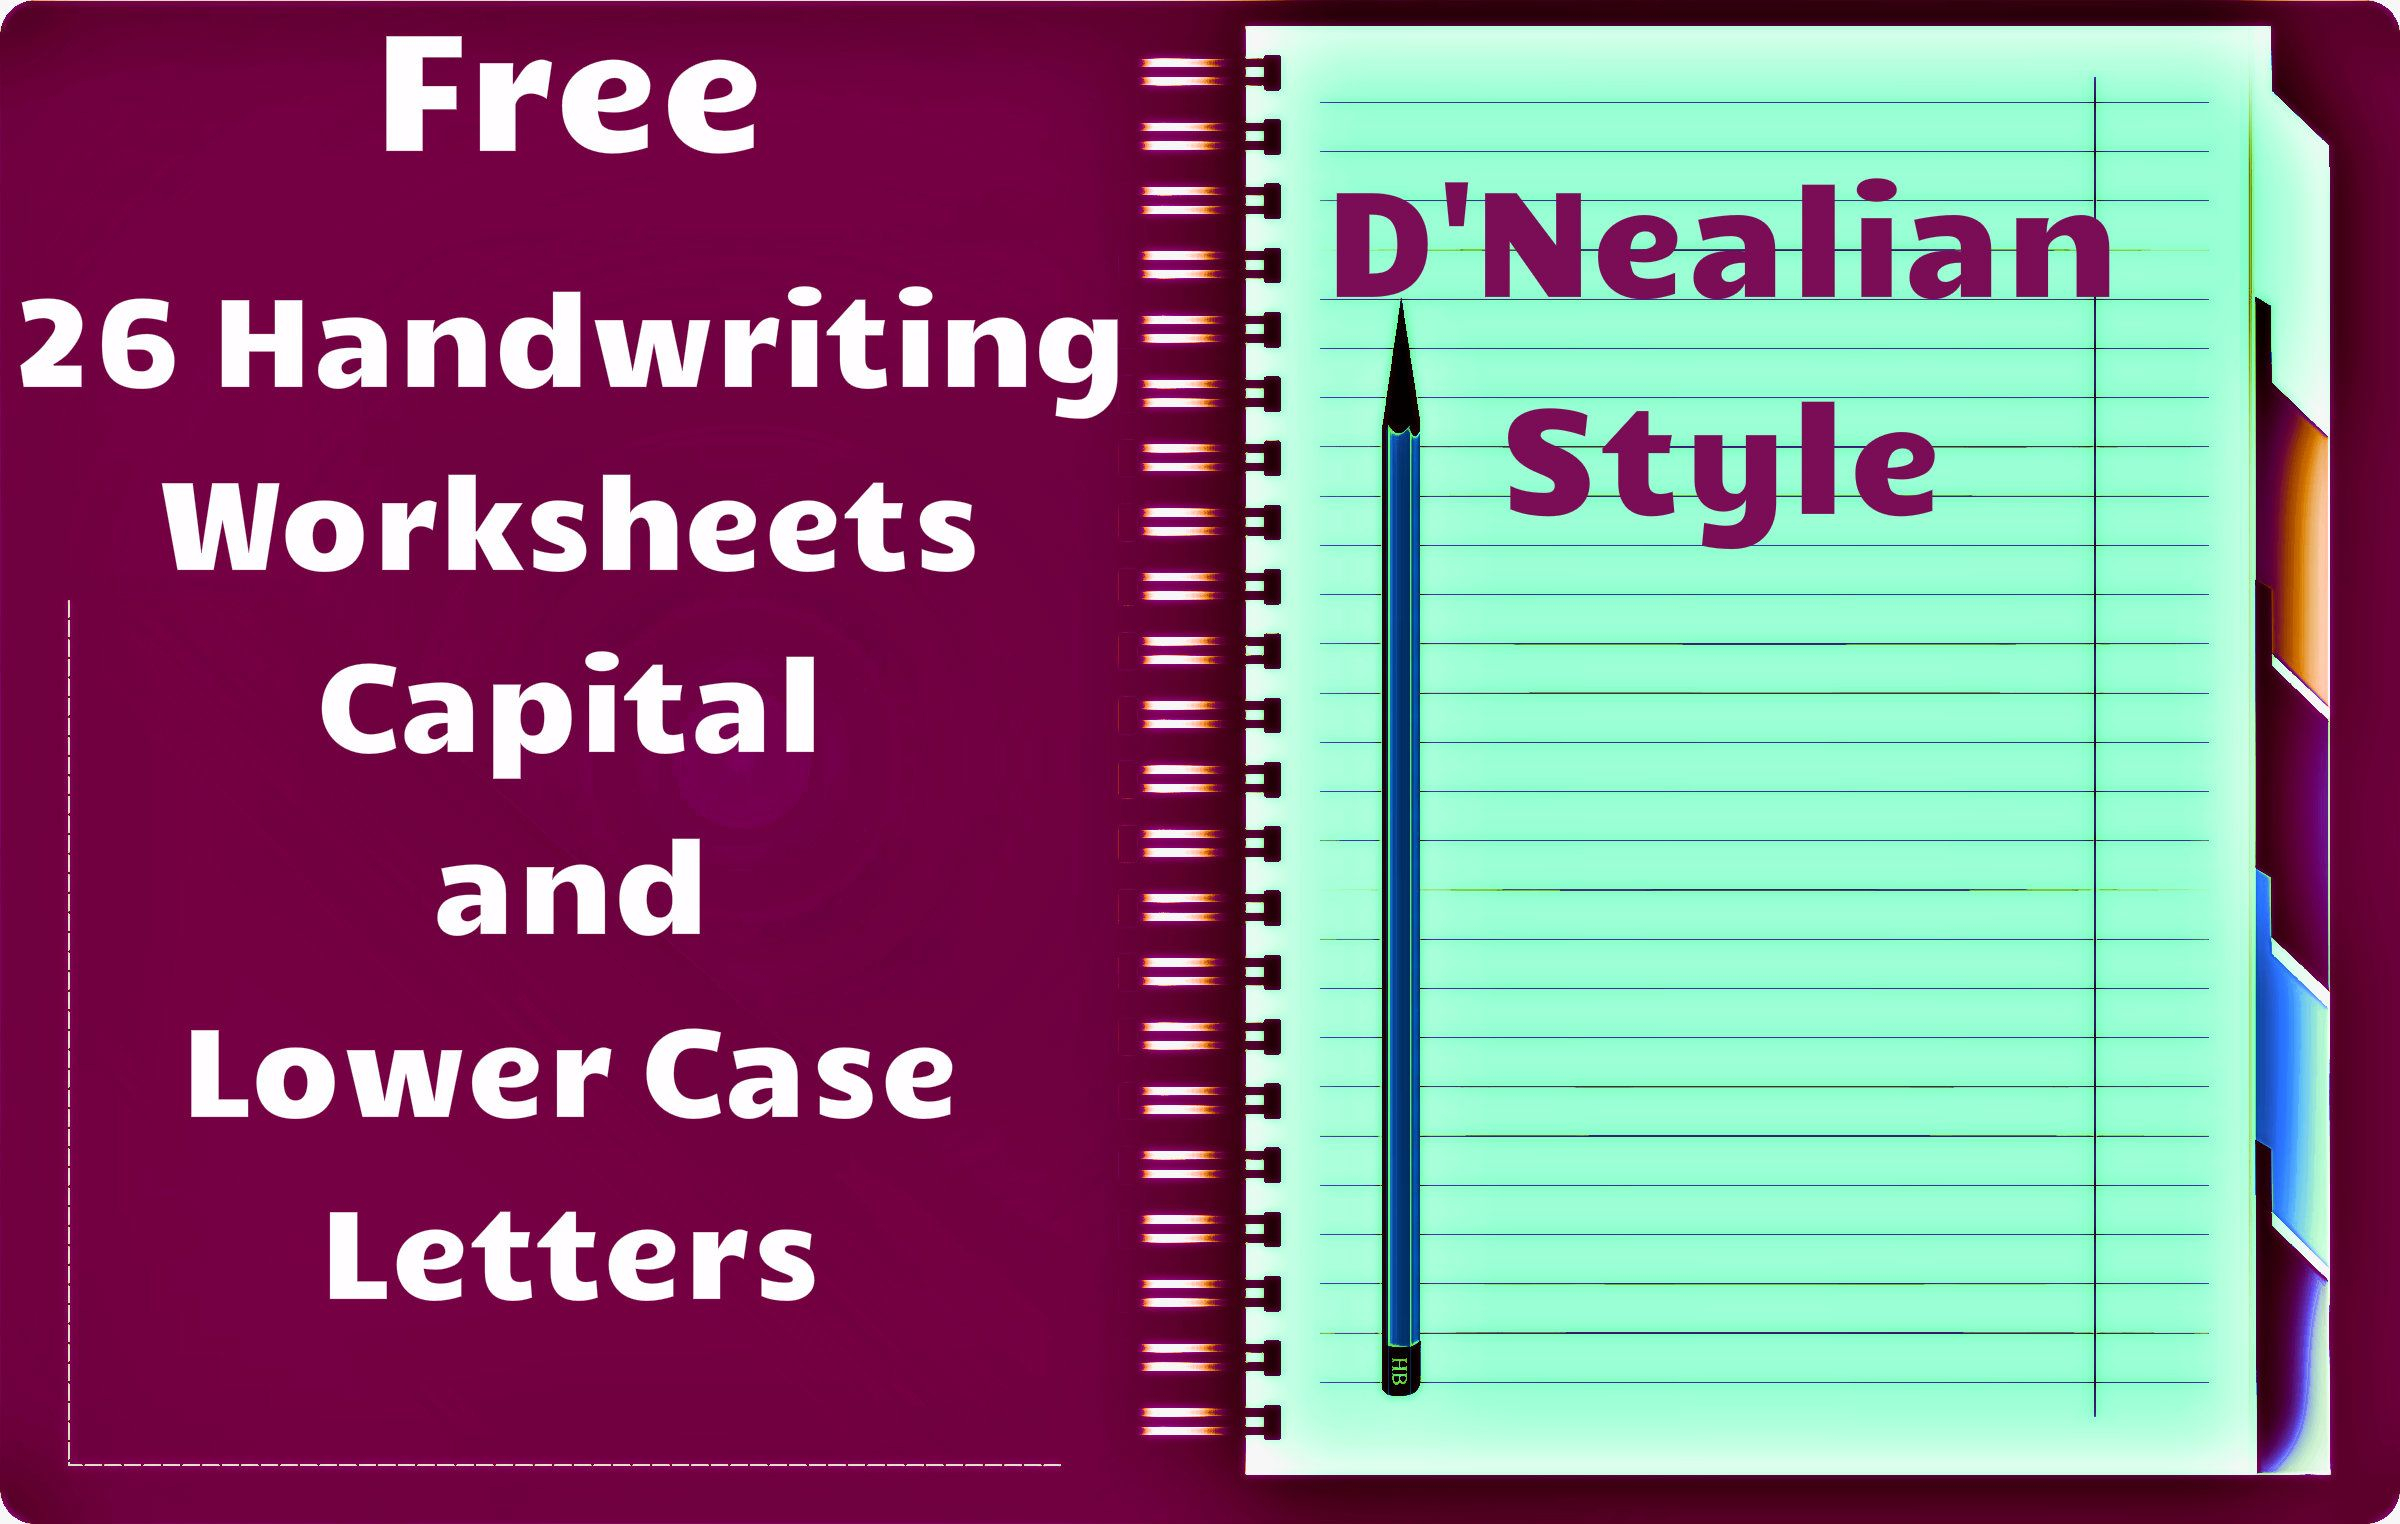 Free Handwriting Worksheets! Includes Worksheets For All intended for D'nealian Alphabet Tracing Worksheets